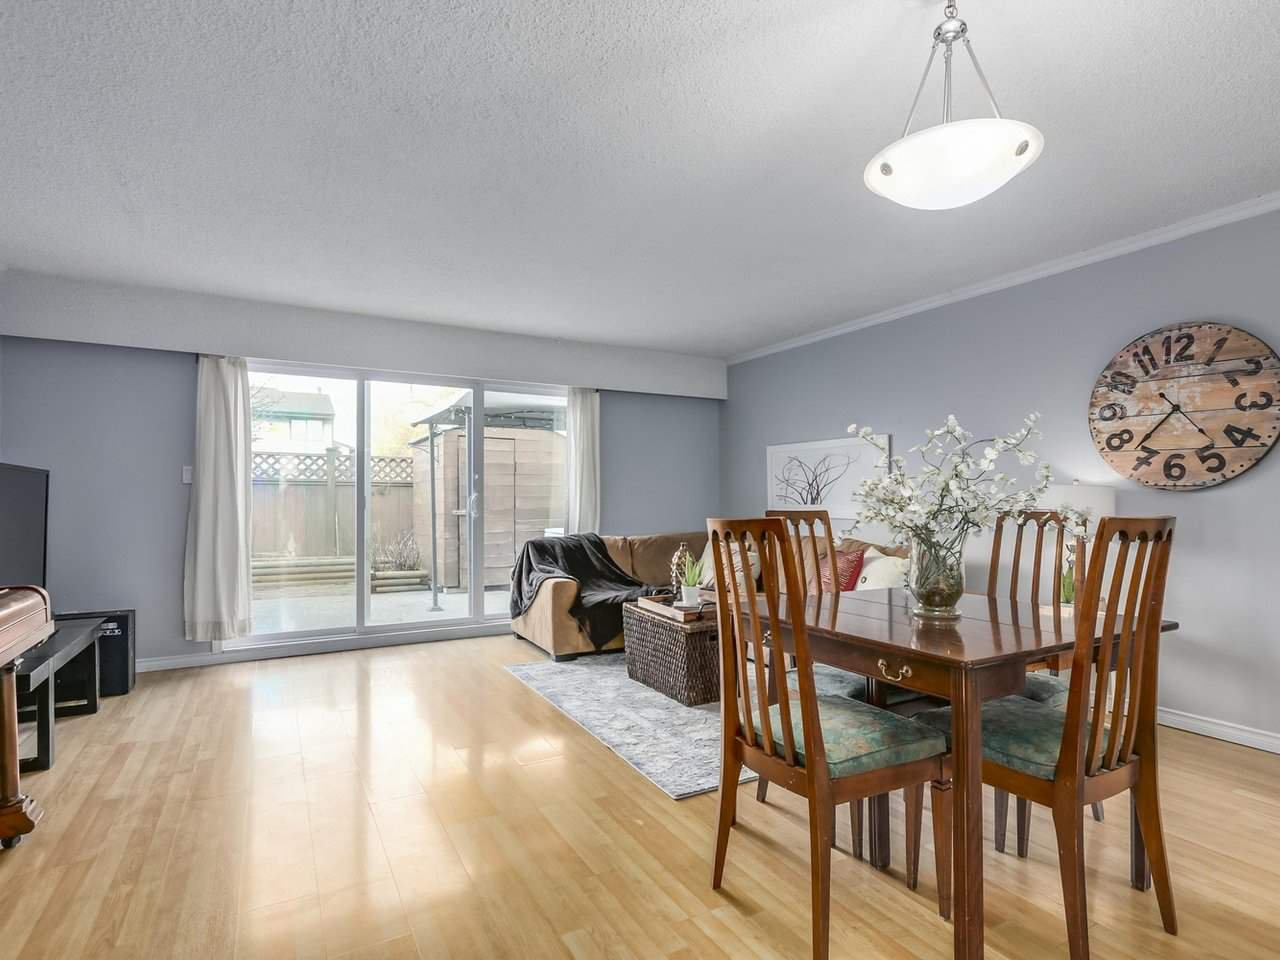 """Main Photo: 1 4951 57 Street in Delta: Hawthorne Townhouse for sale in """"OASIS"""" (Ladner)  : MLS®# R2339888"""